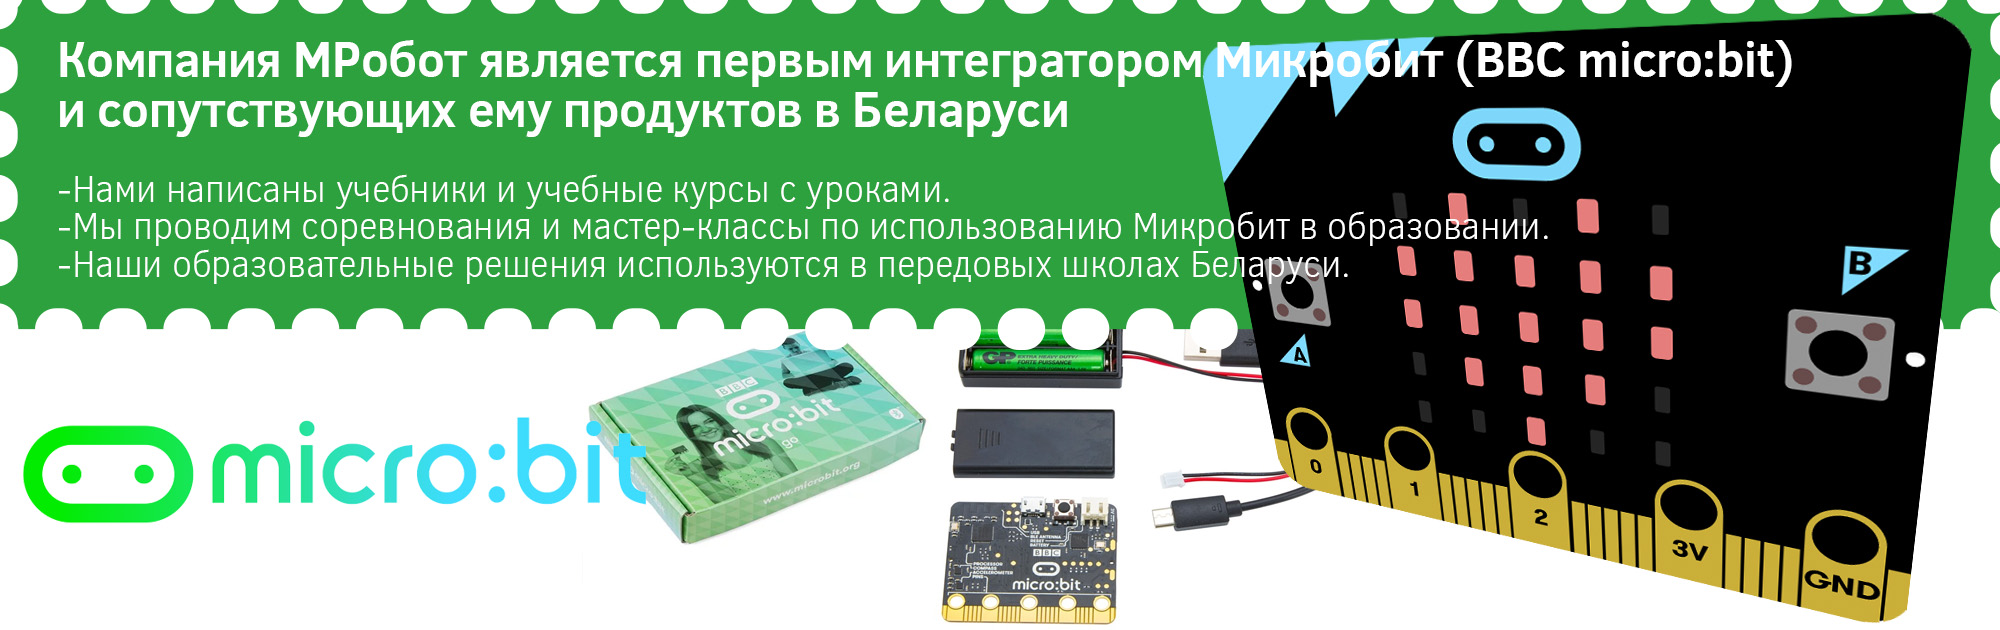 microbit-slider-new-1